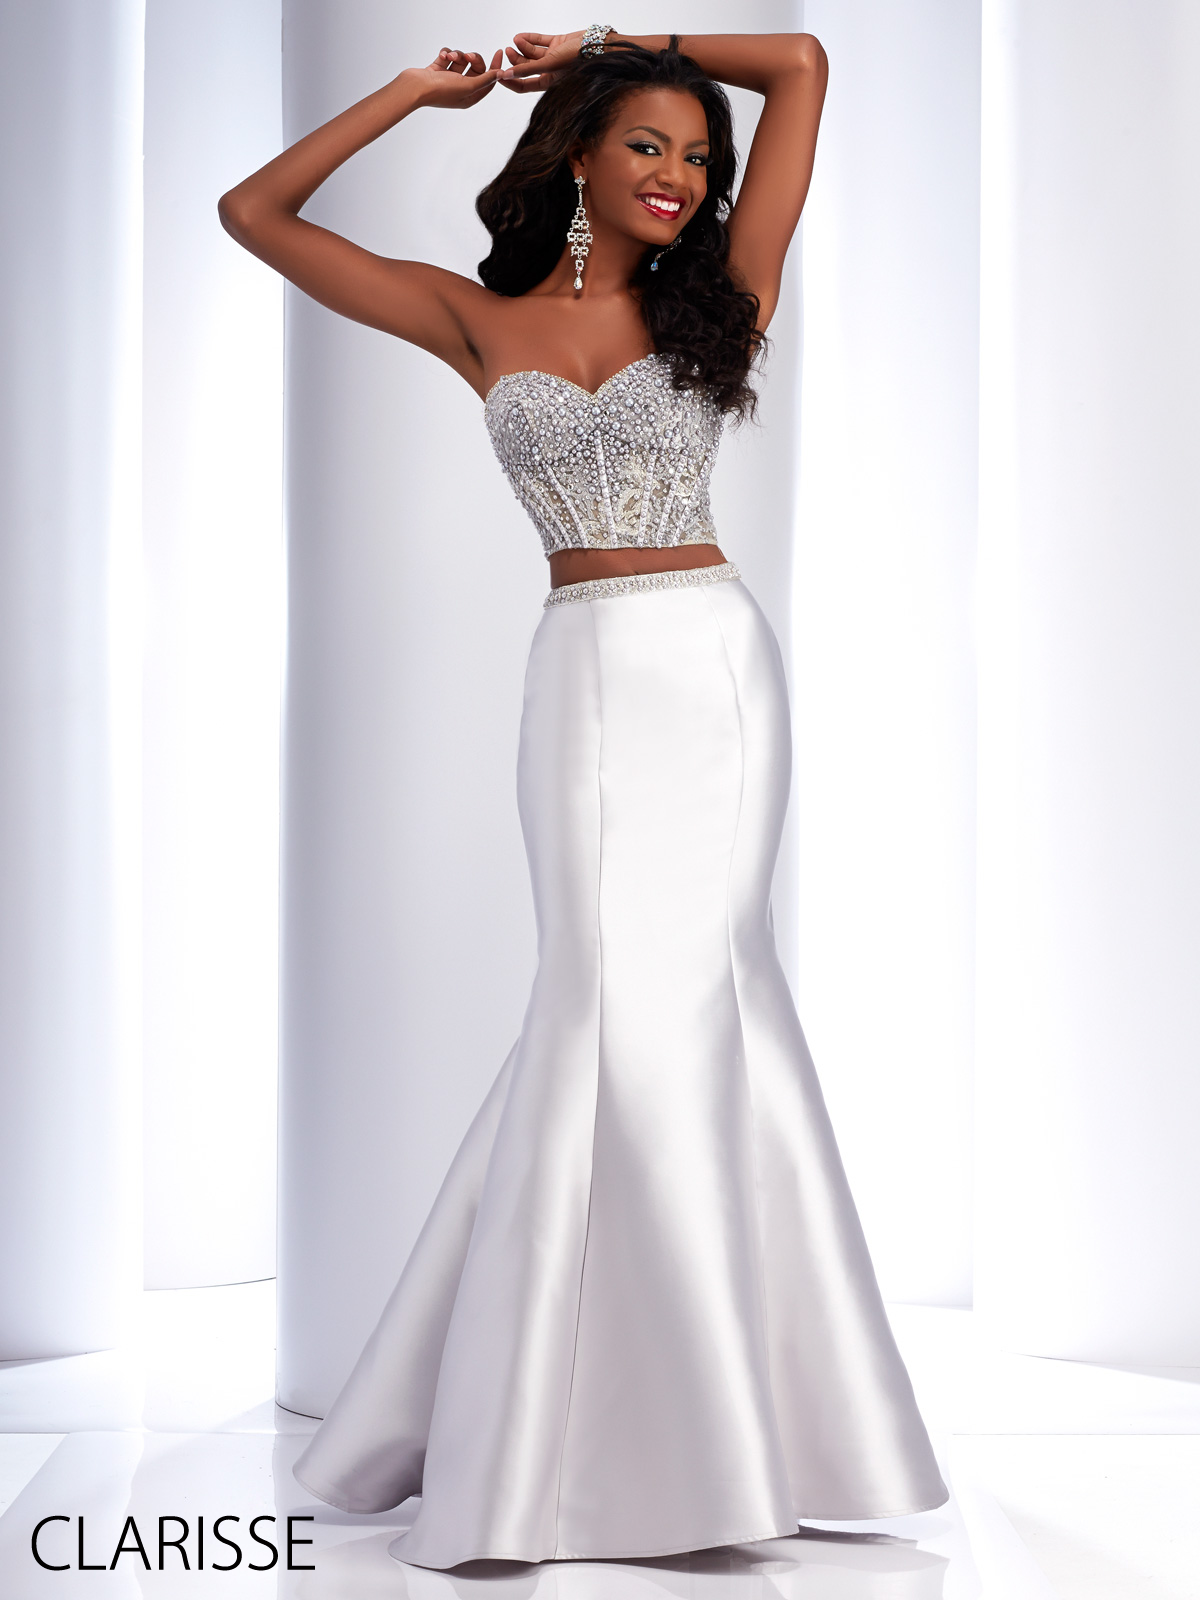 Clarisse 2016 Couture Two Piece Prom Dress Style 4706 in Gray Silver.  Gorgeous lace 5a844fcb422e